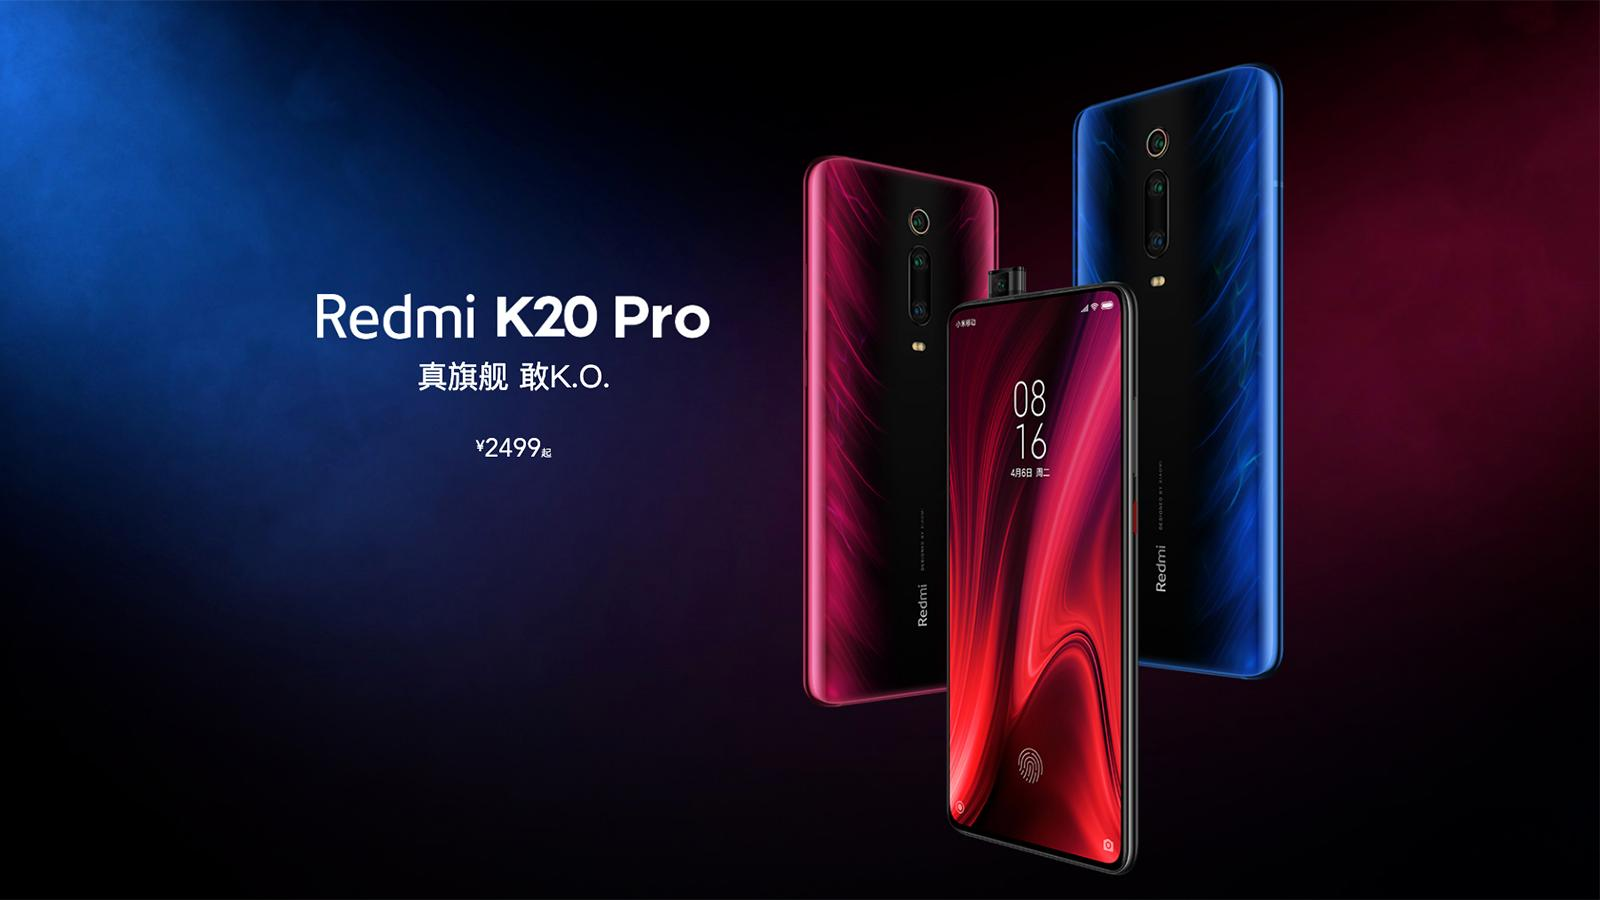 Sforum - The latest technology information redmi_k20_pro Redmi K20 Pro is about to have 12GB RAM version